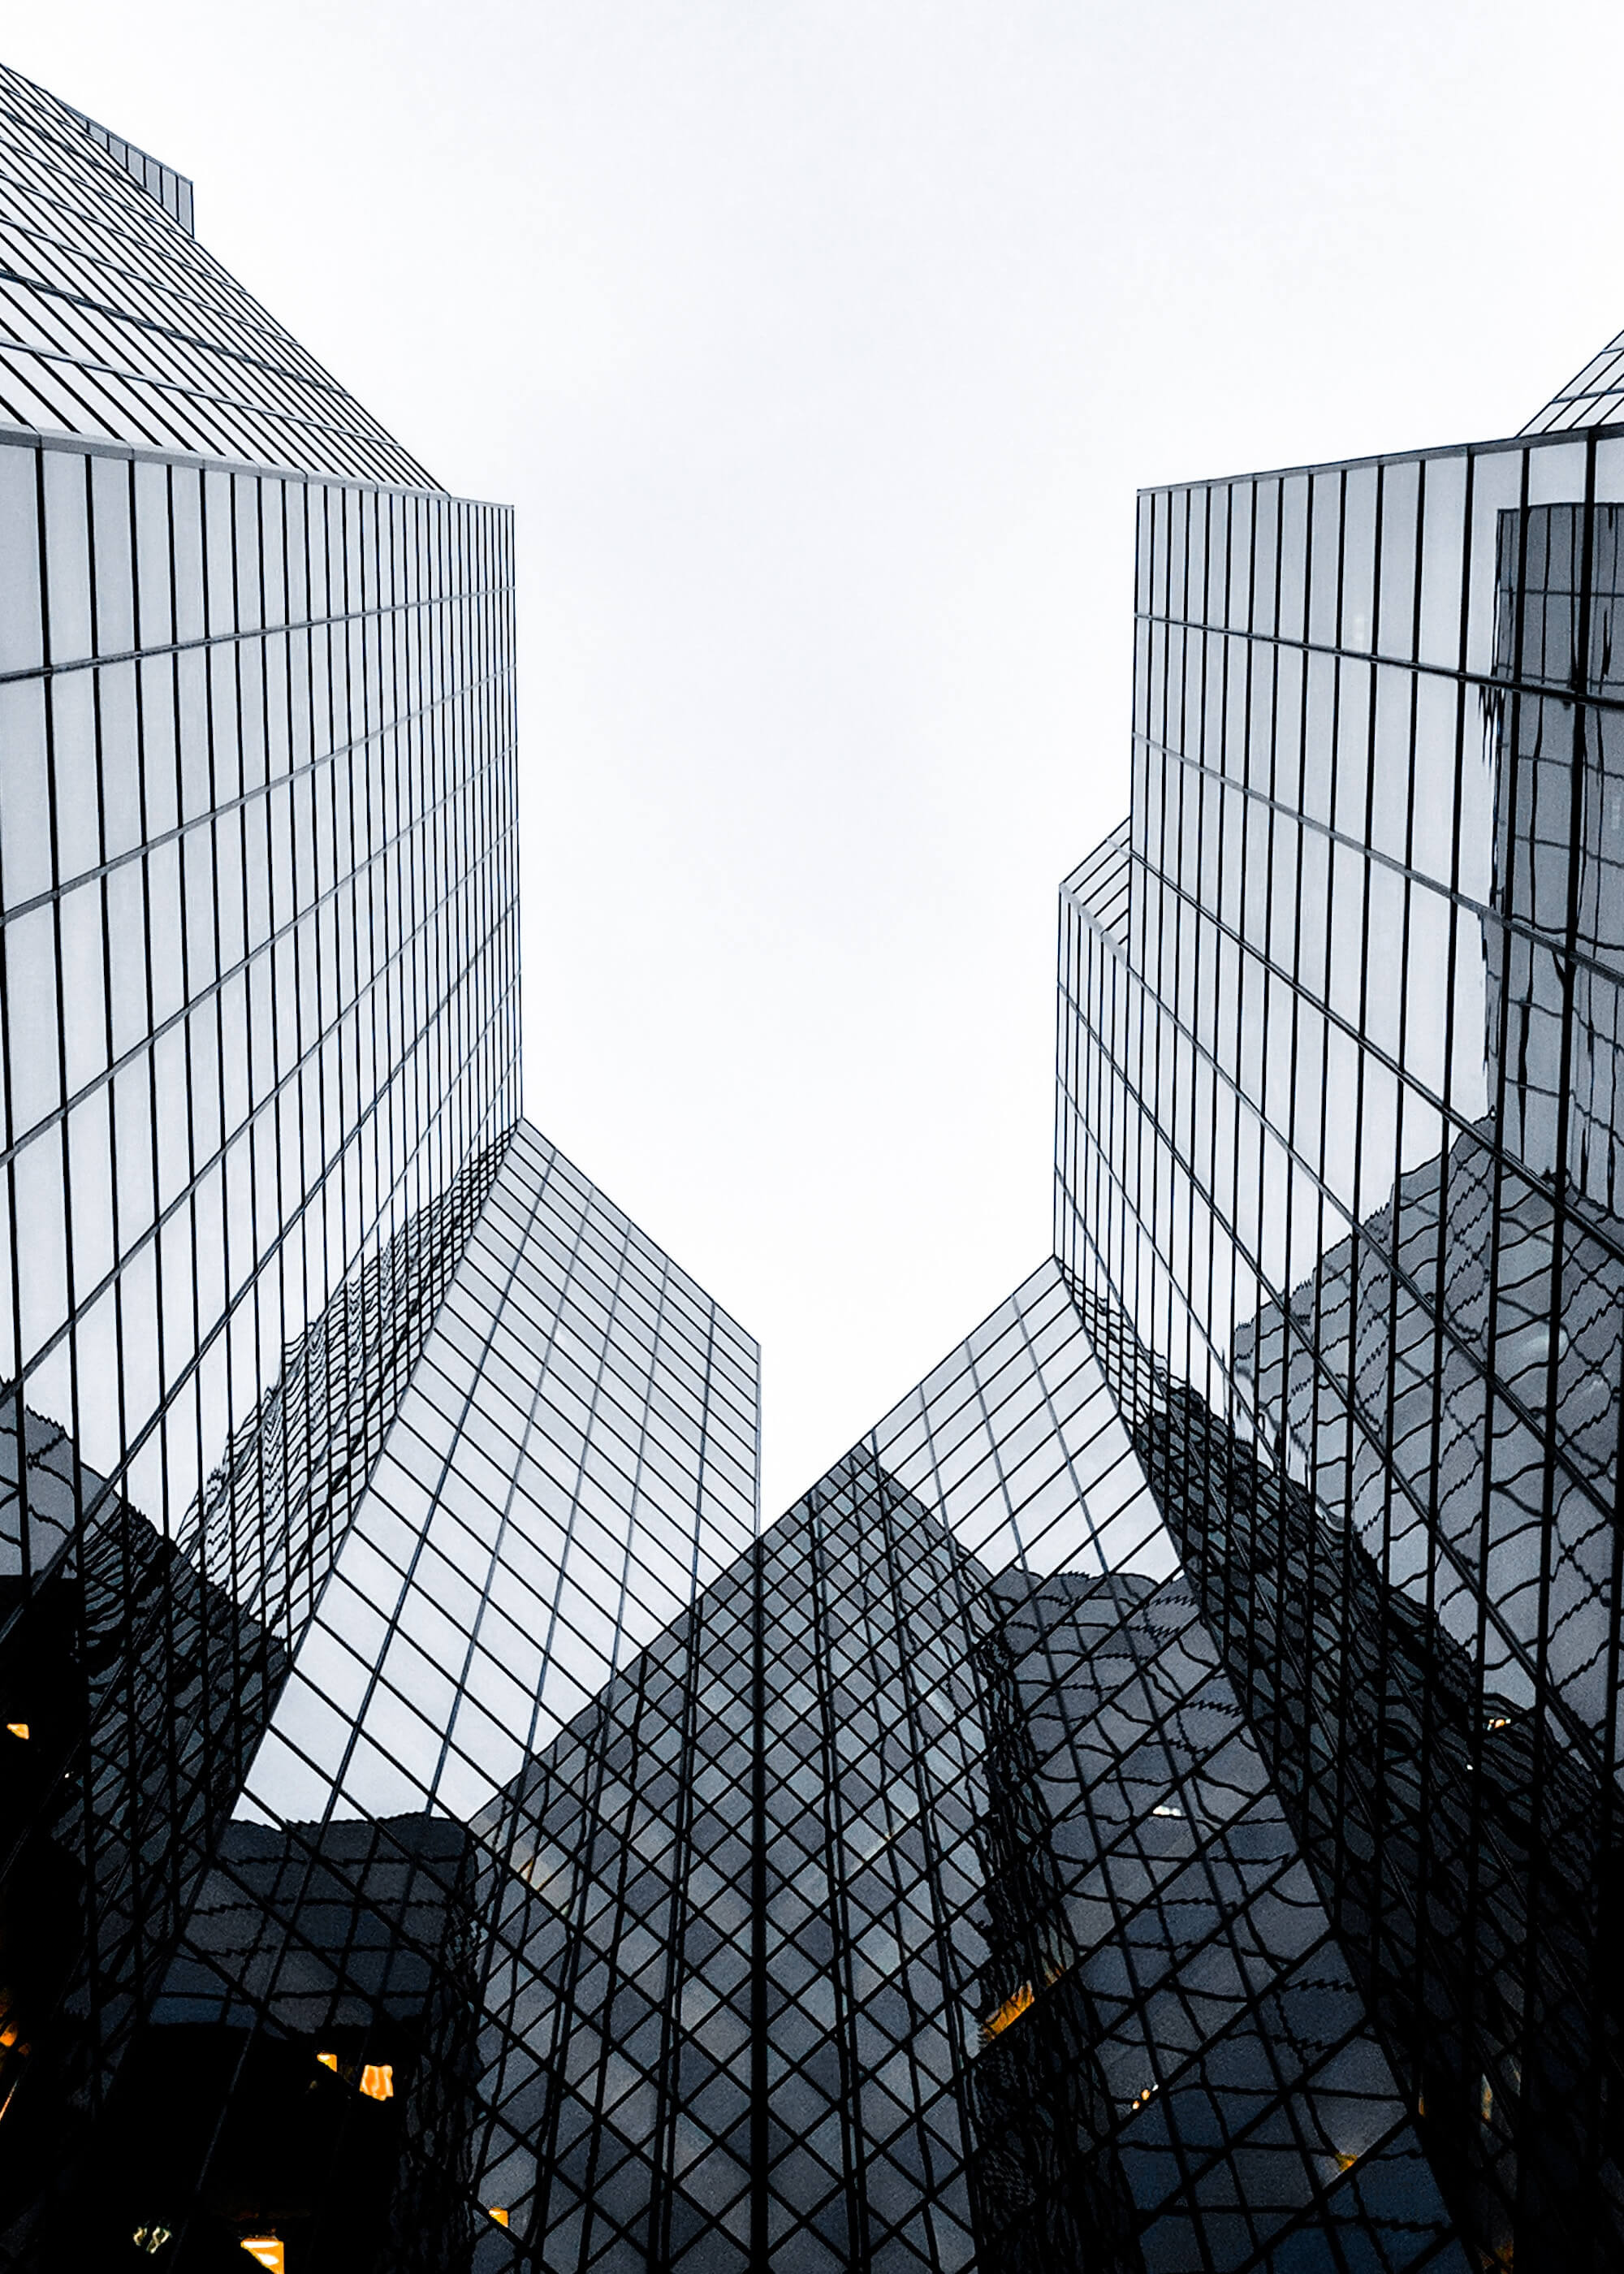 Image of tall buildings